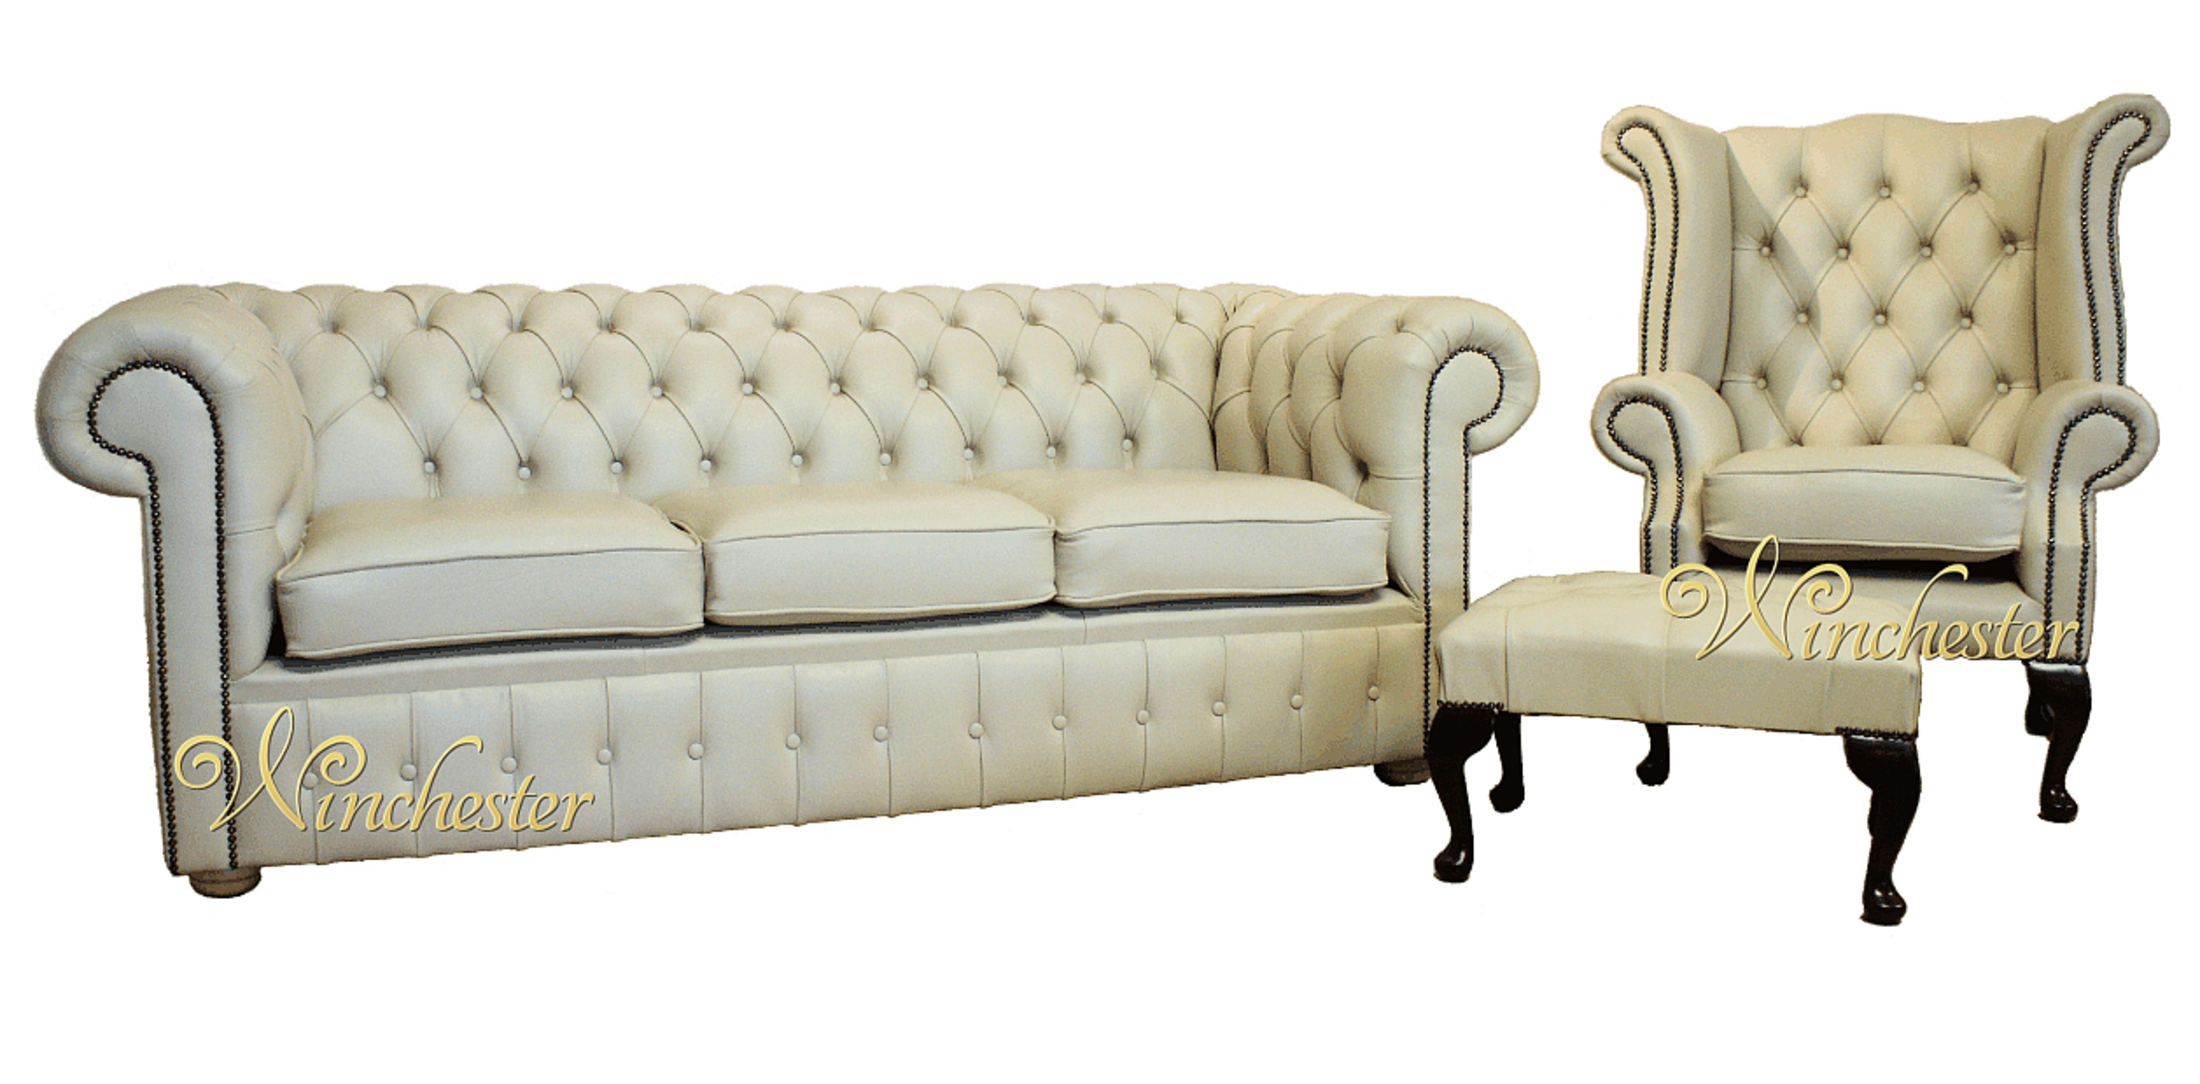 Chesterfield Cream Leather Sofa Offer 31 Footstool Leather